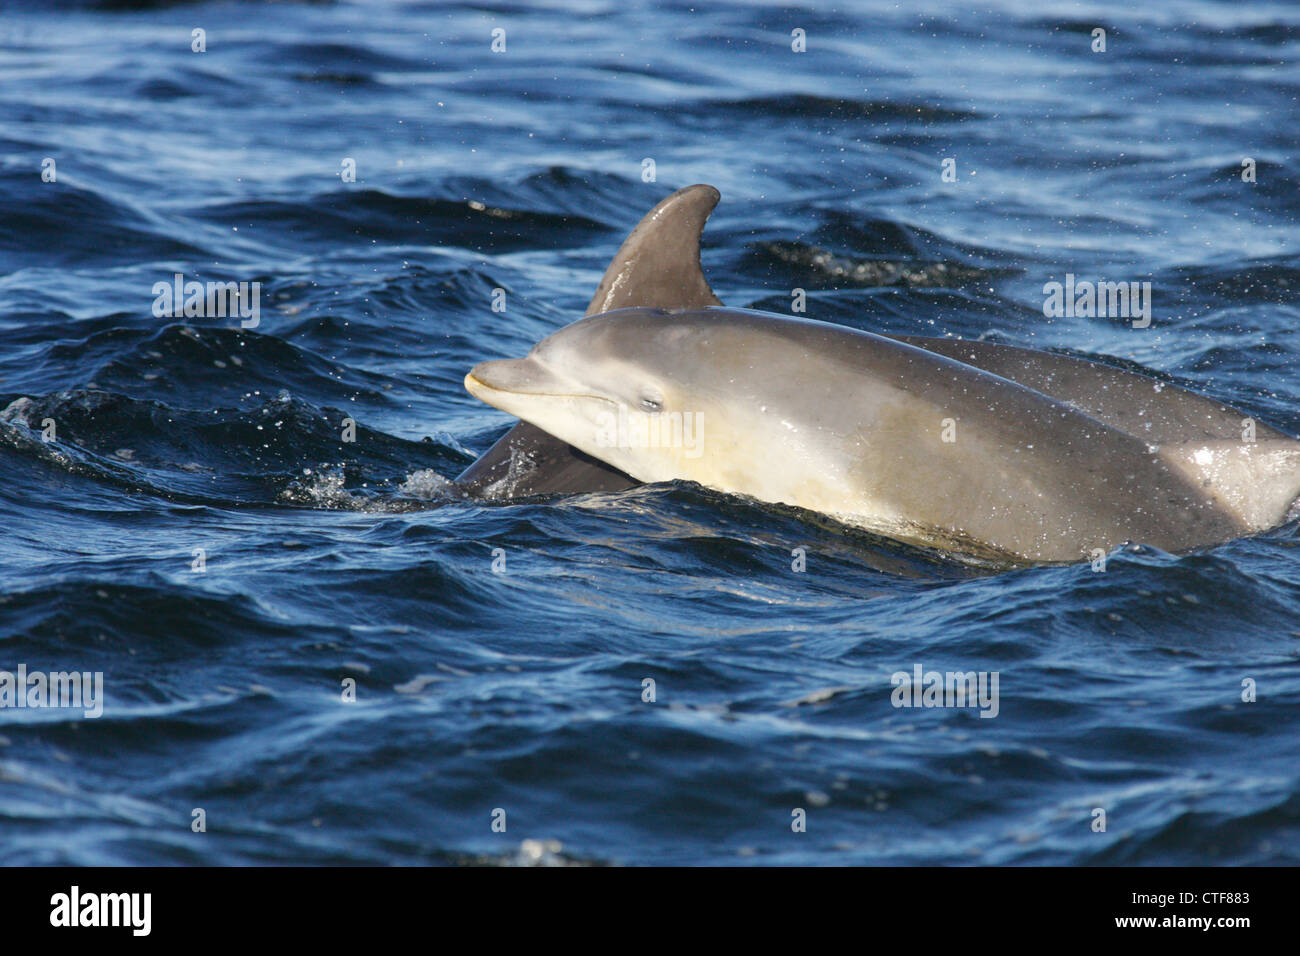 Bottlenose dolphins (Tursiops truncatus), mother and calf surfacing, Moray Firth, Scotland, UK - Stock Image